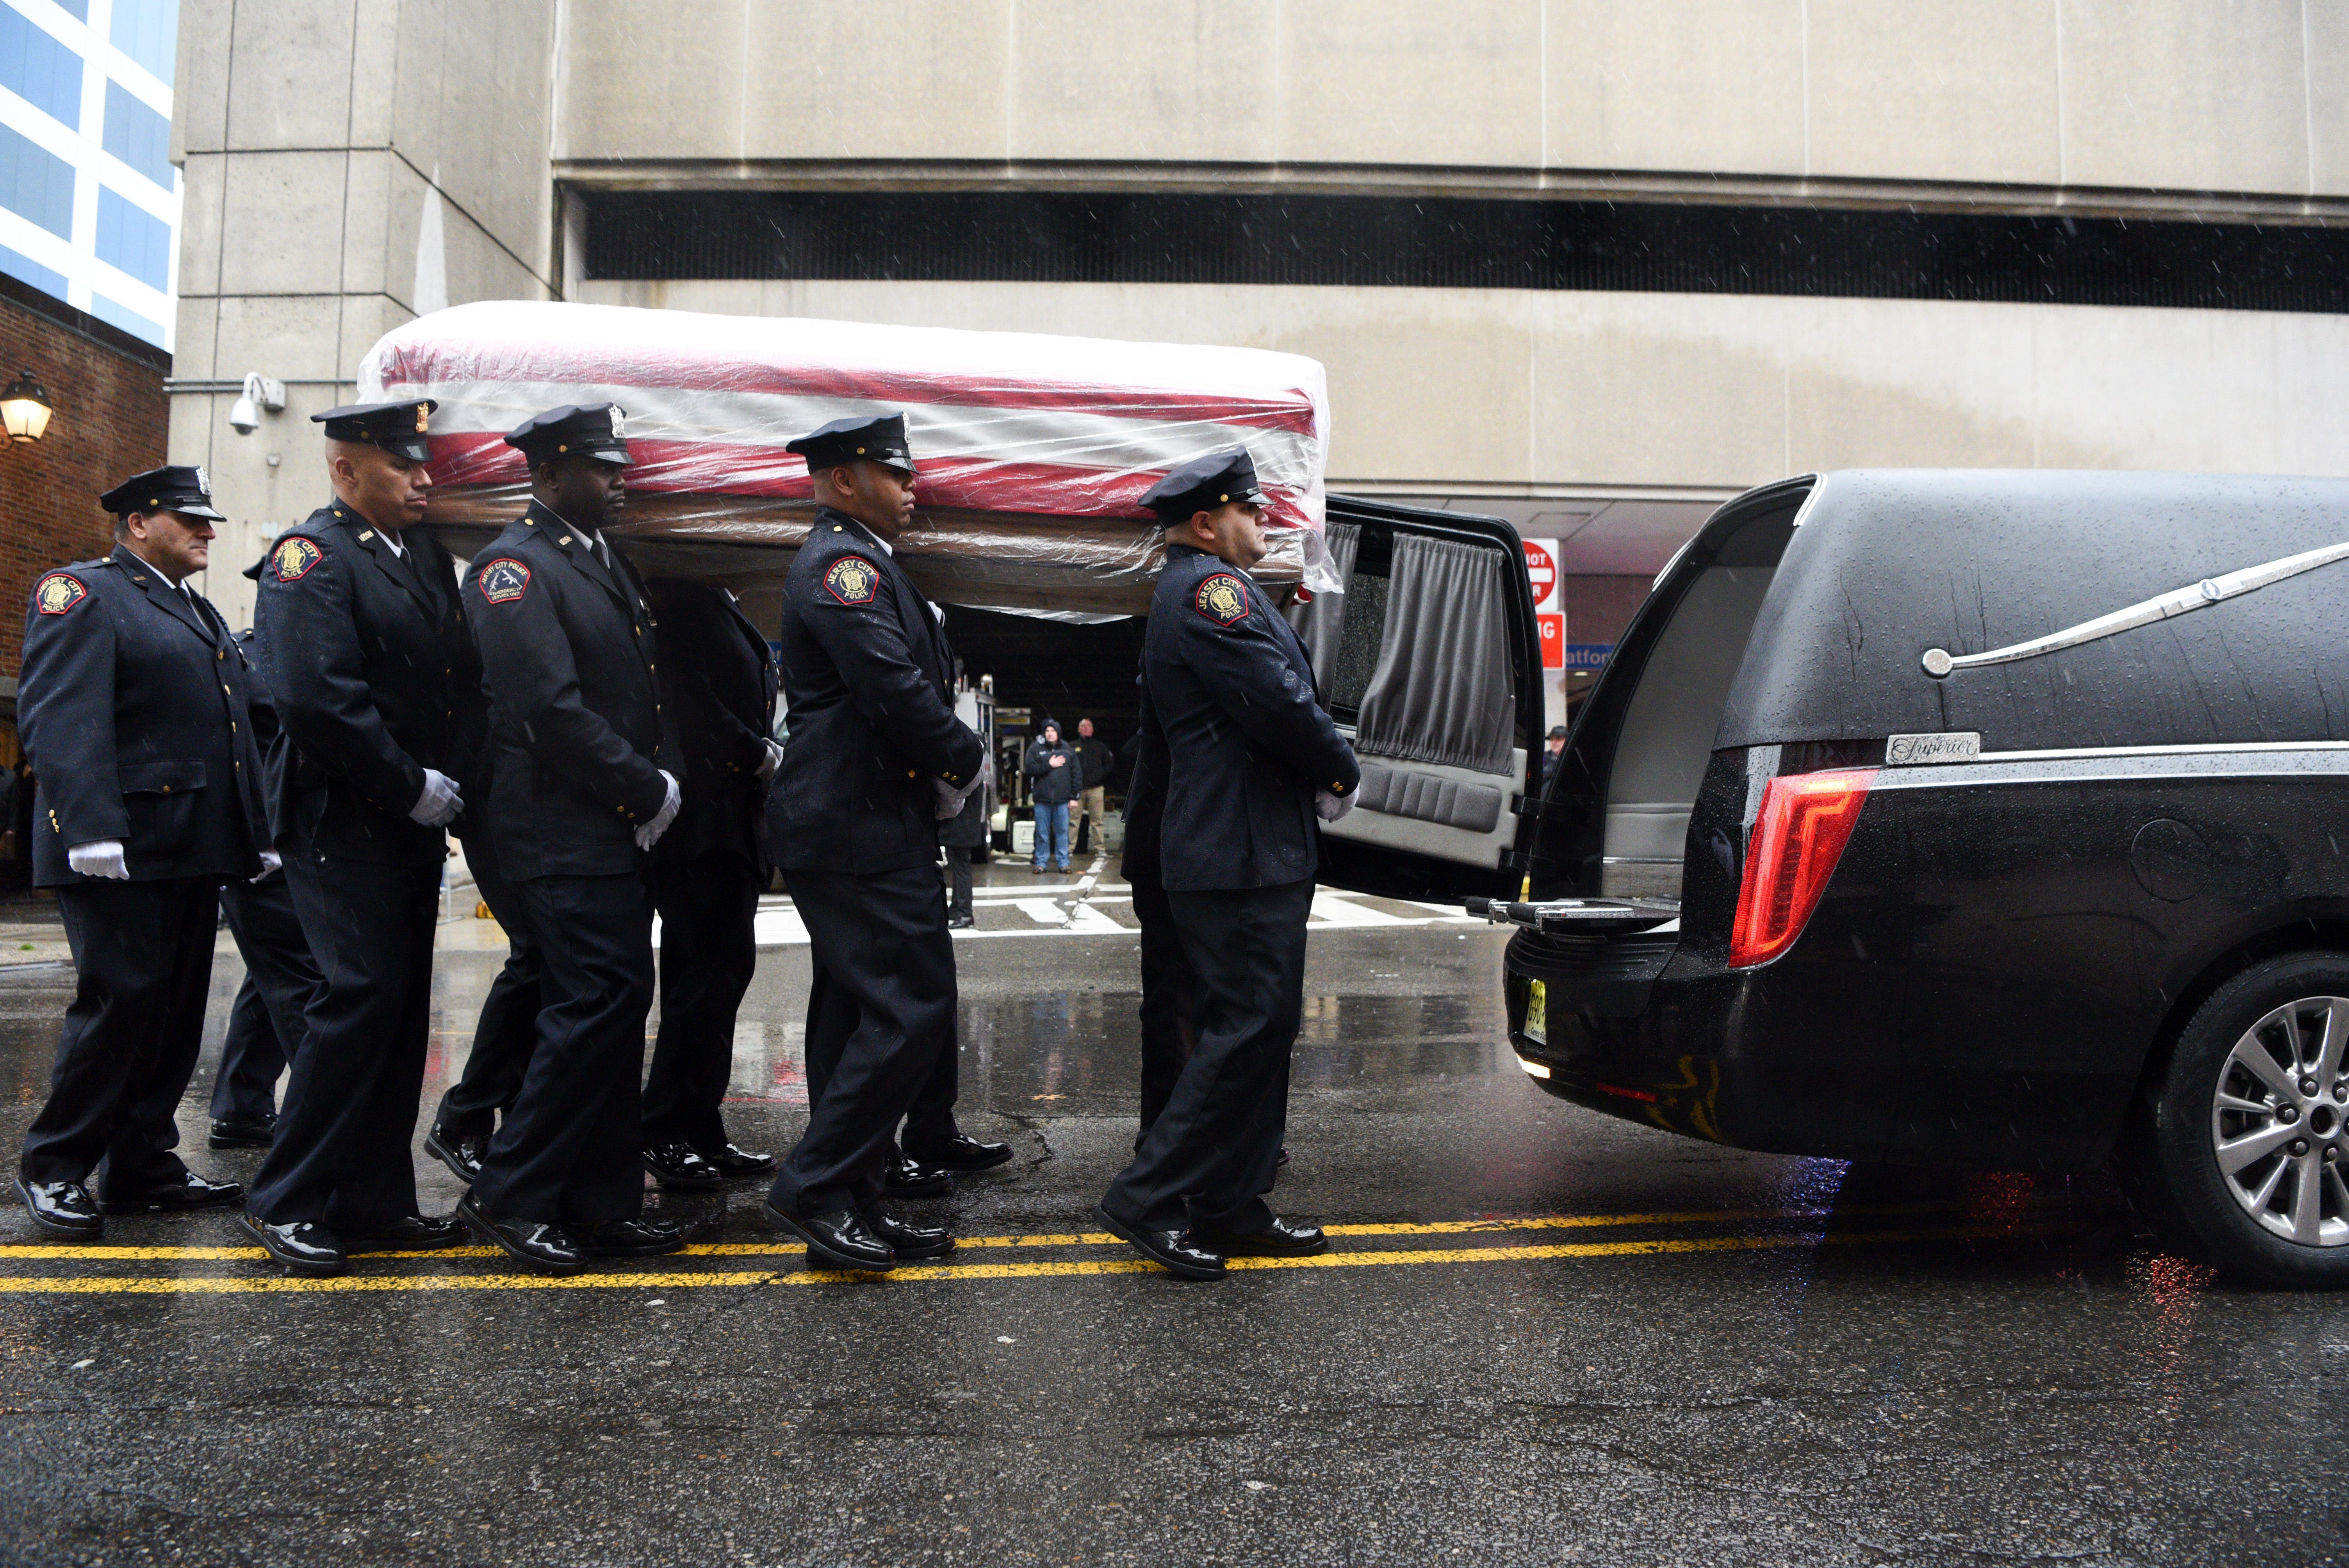 An American hero : Detective Joseph Seals mourned a week after Jersey City shootings